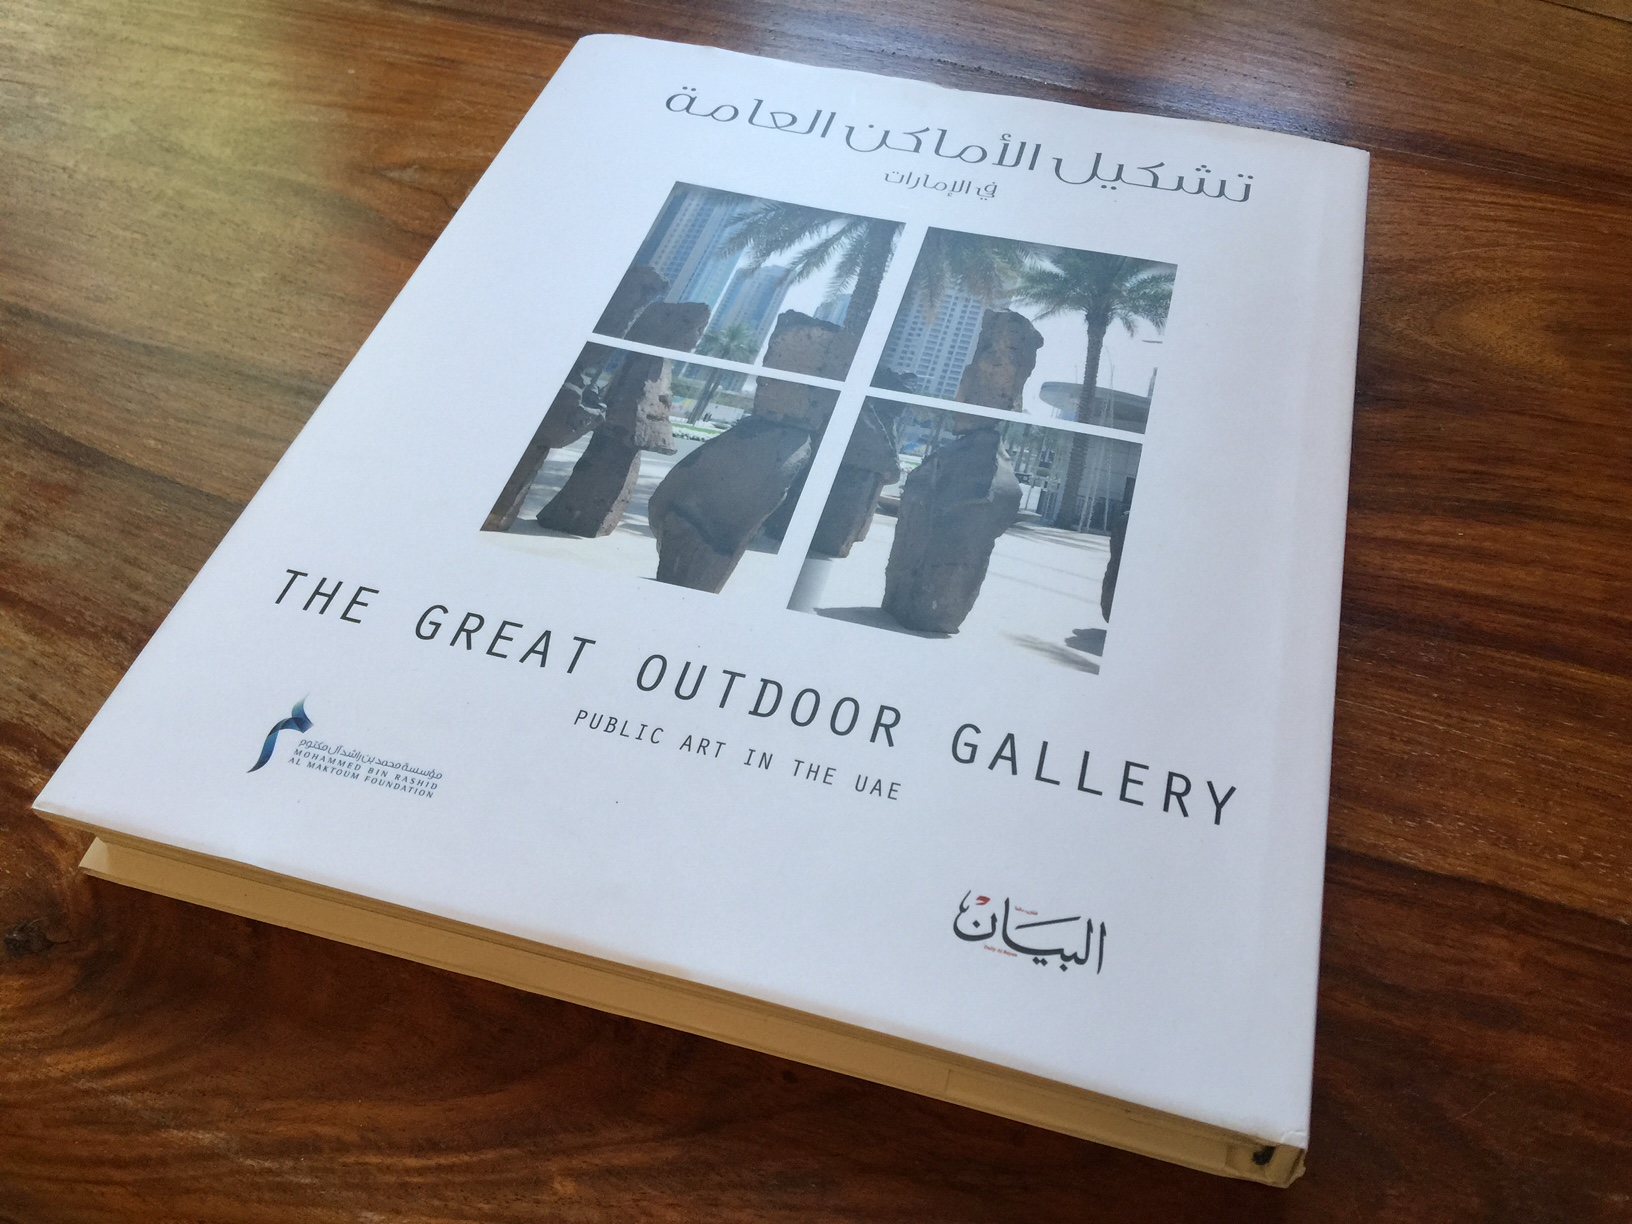 A project I pitched and then saw through from concept to delivery.The Great Outdoor Gallery explores the development of public art in the UAE, including a chapter on how public art spread throughout the Arab Gulf states. Launched at the Frankfurt Book Fair in 2015, the book is available through the Mohammed Bin Rashid Al Maktoum Foundation, Dubai.